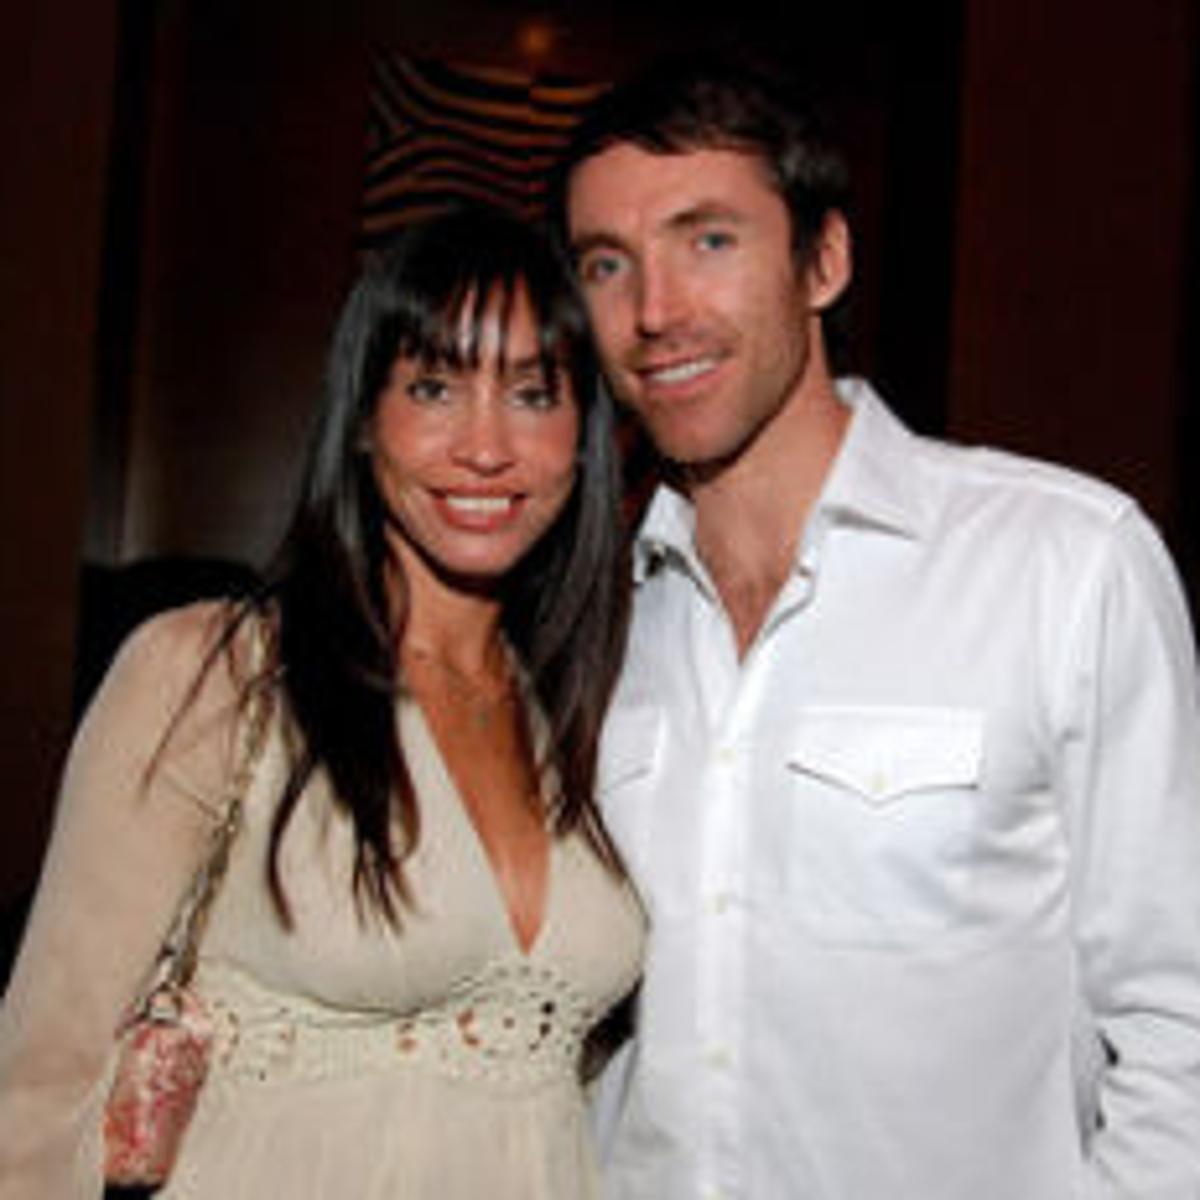 Steve Nash Doesn T Want To Pay Child Support The Corner Oanow Com